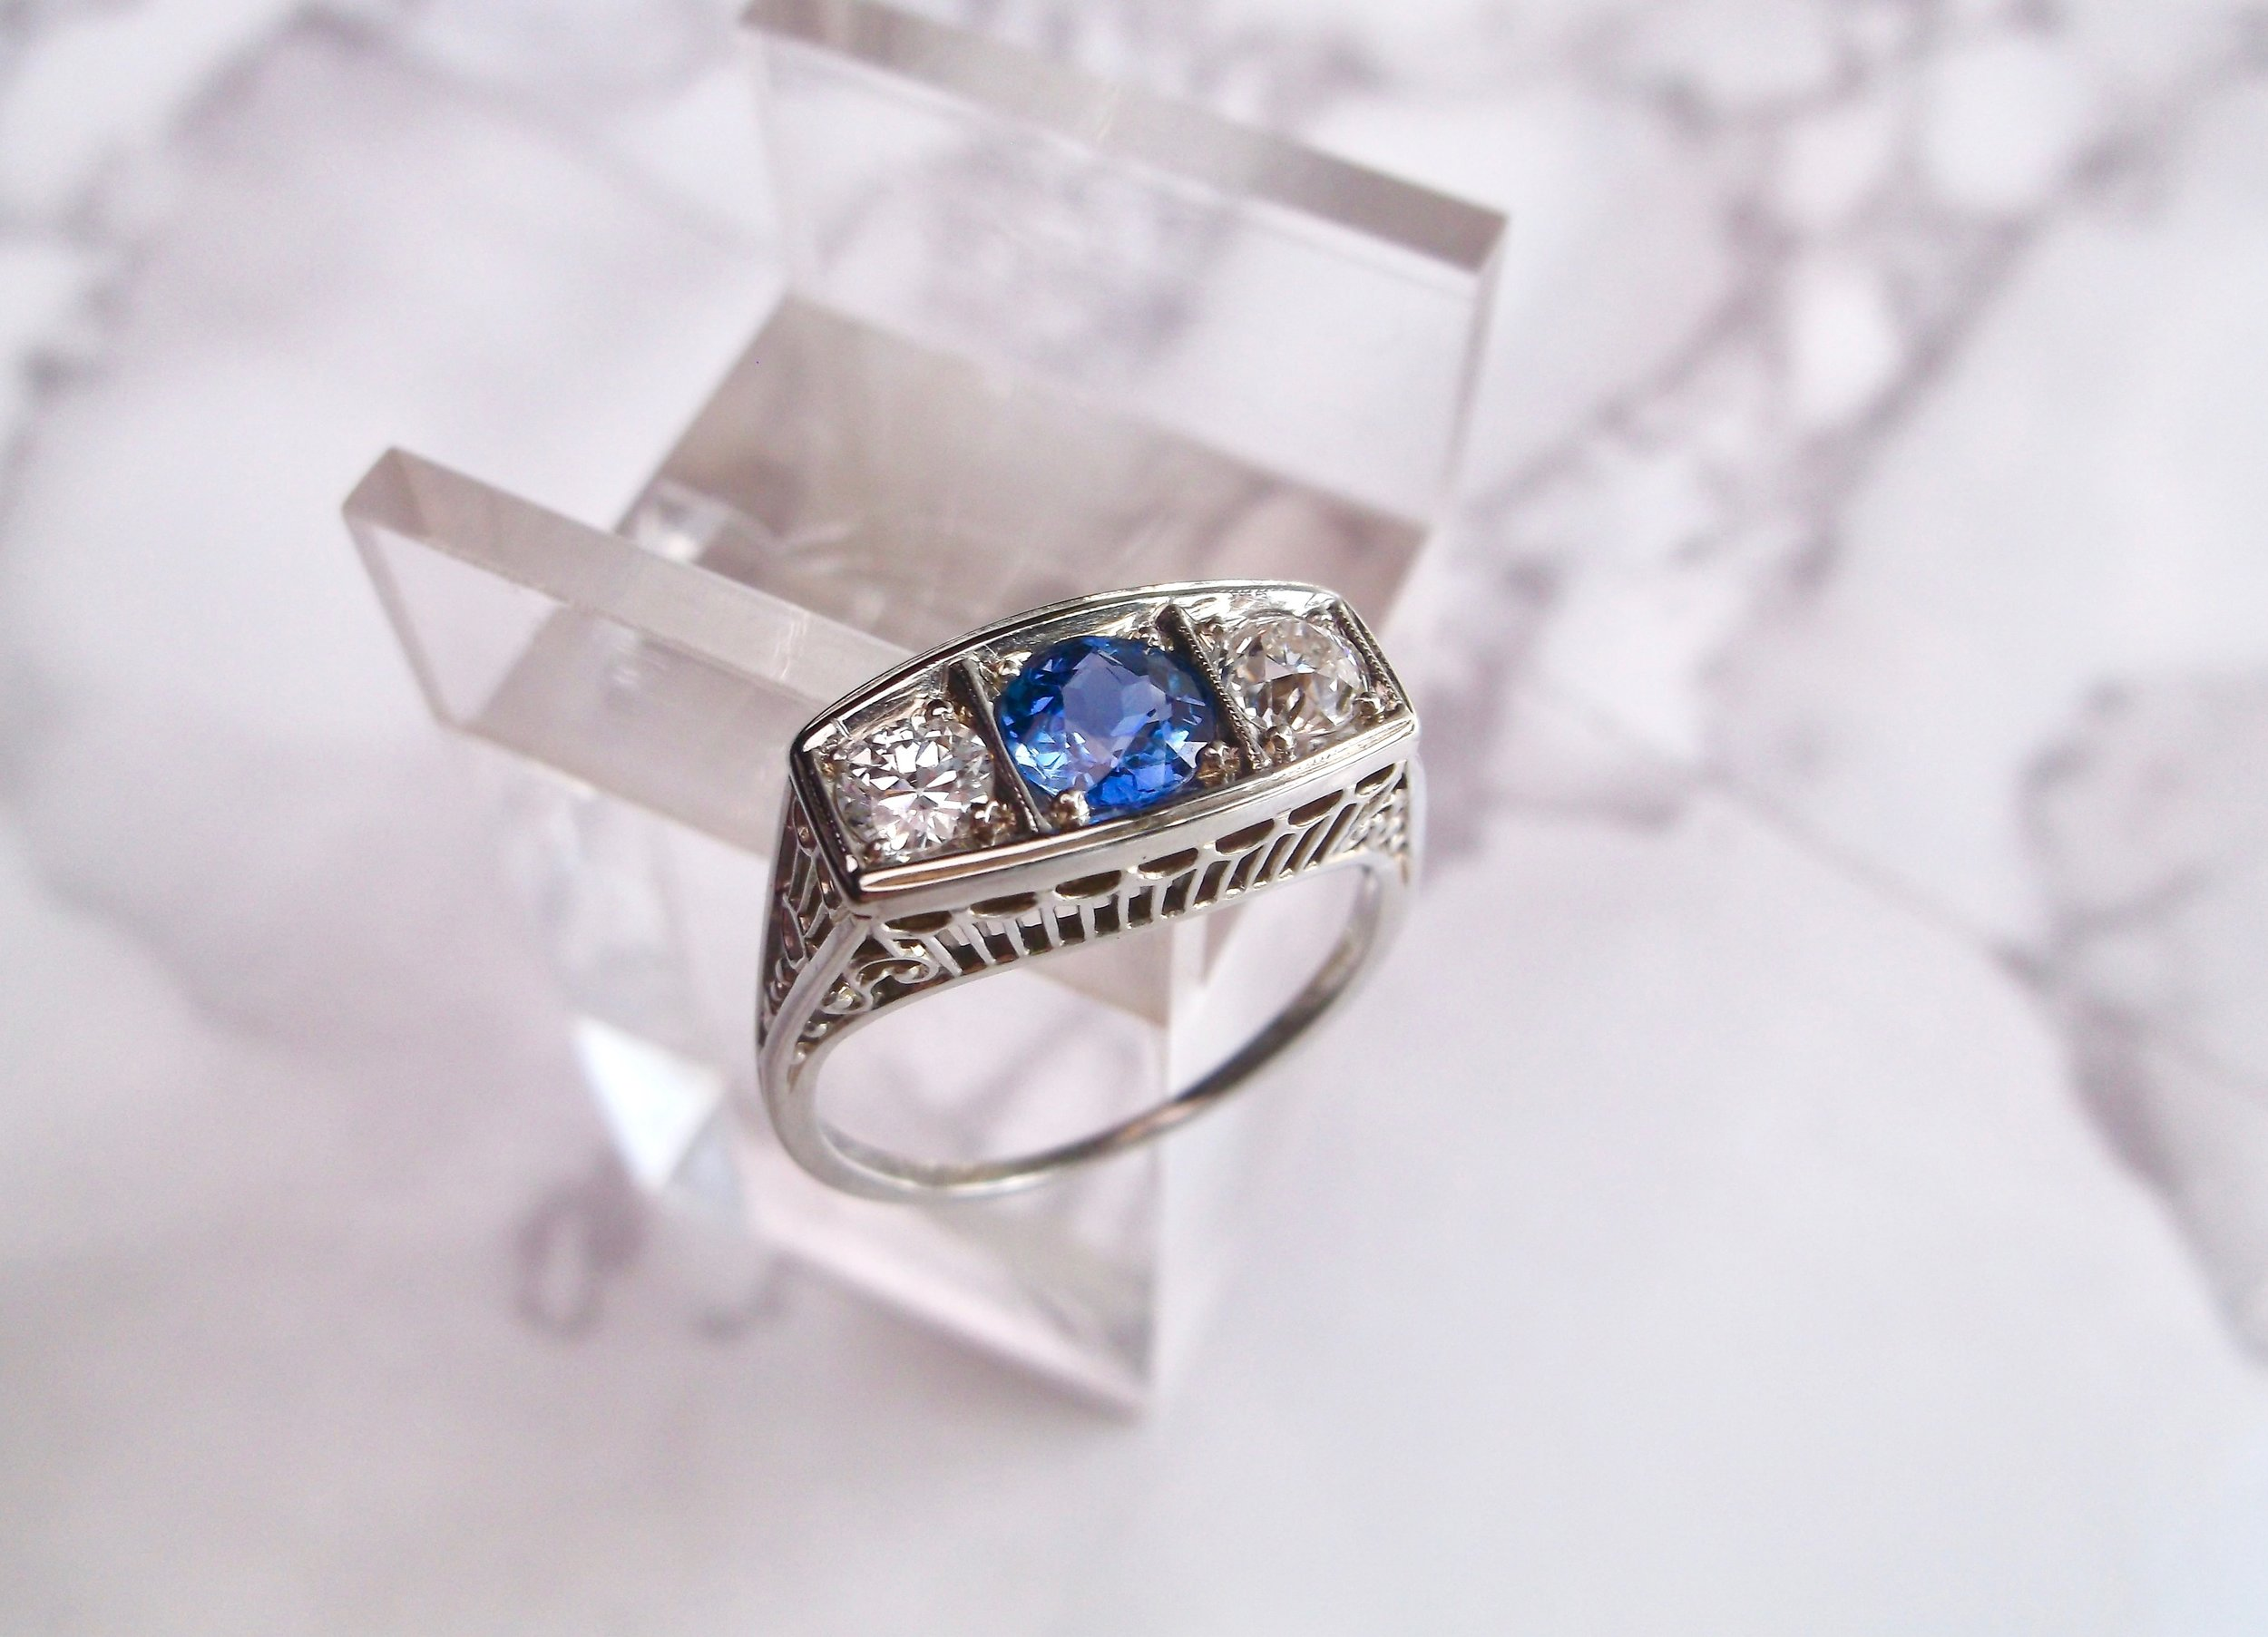 Unique, antique  and nontraditional - our kind of engagement ring! We think this beautiful Art Deco diamond and sapphire ring would sure make someone happy! Could it be you?? Shop this lovely ring  HERE .